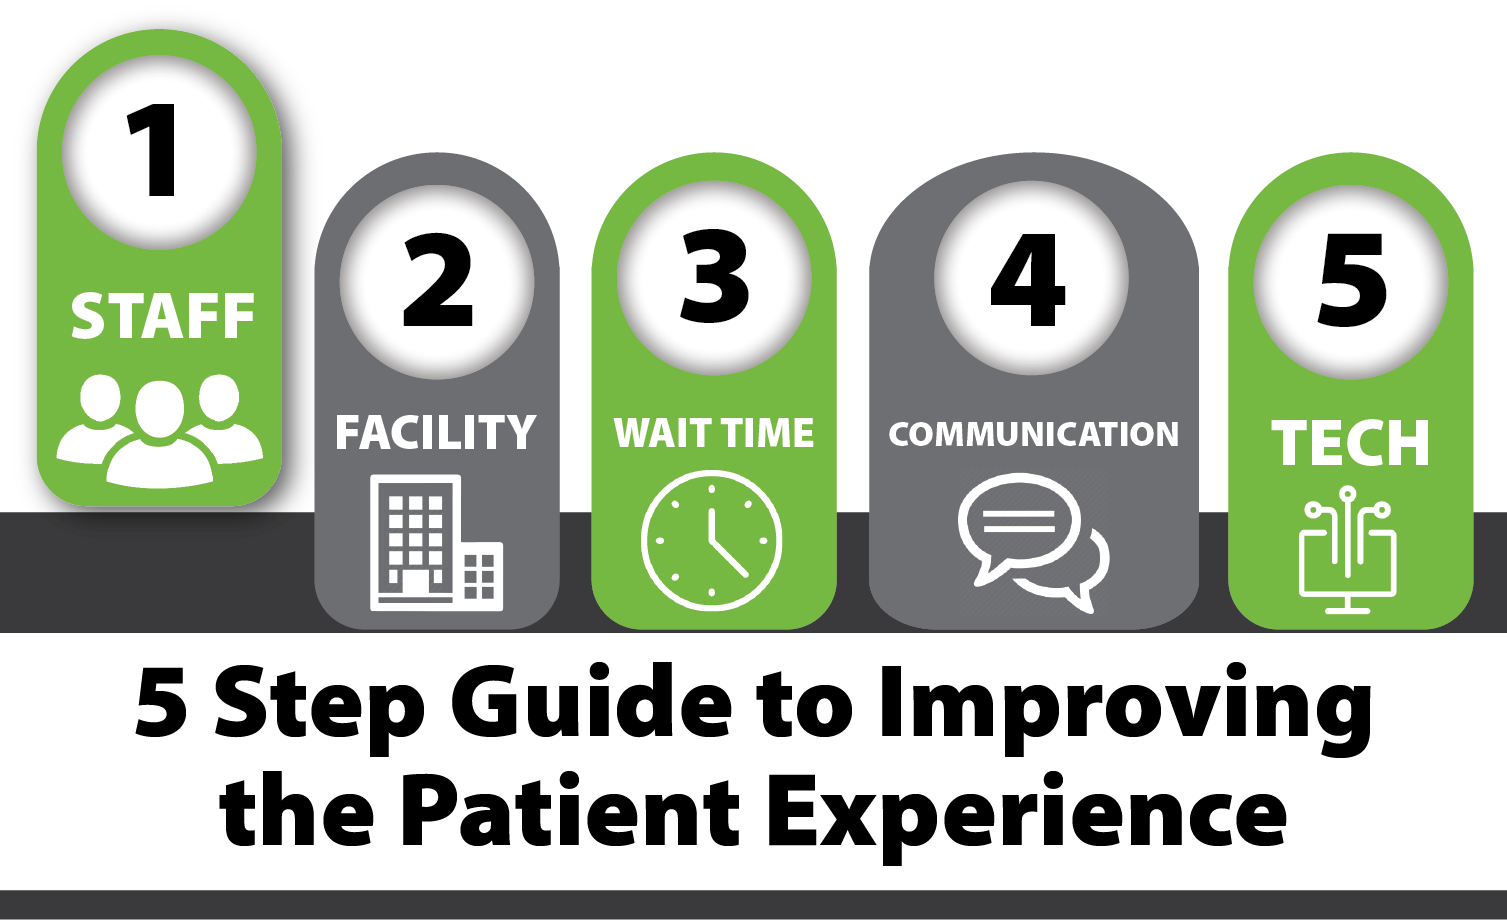 5 Step Guide to Improving the Patient Experience_Staff